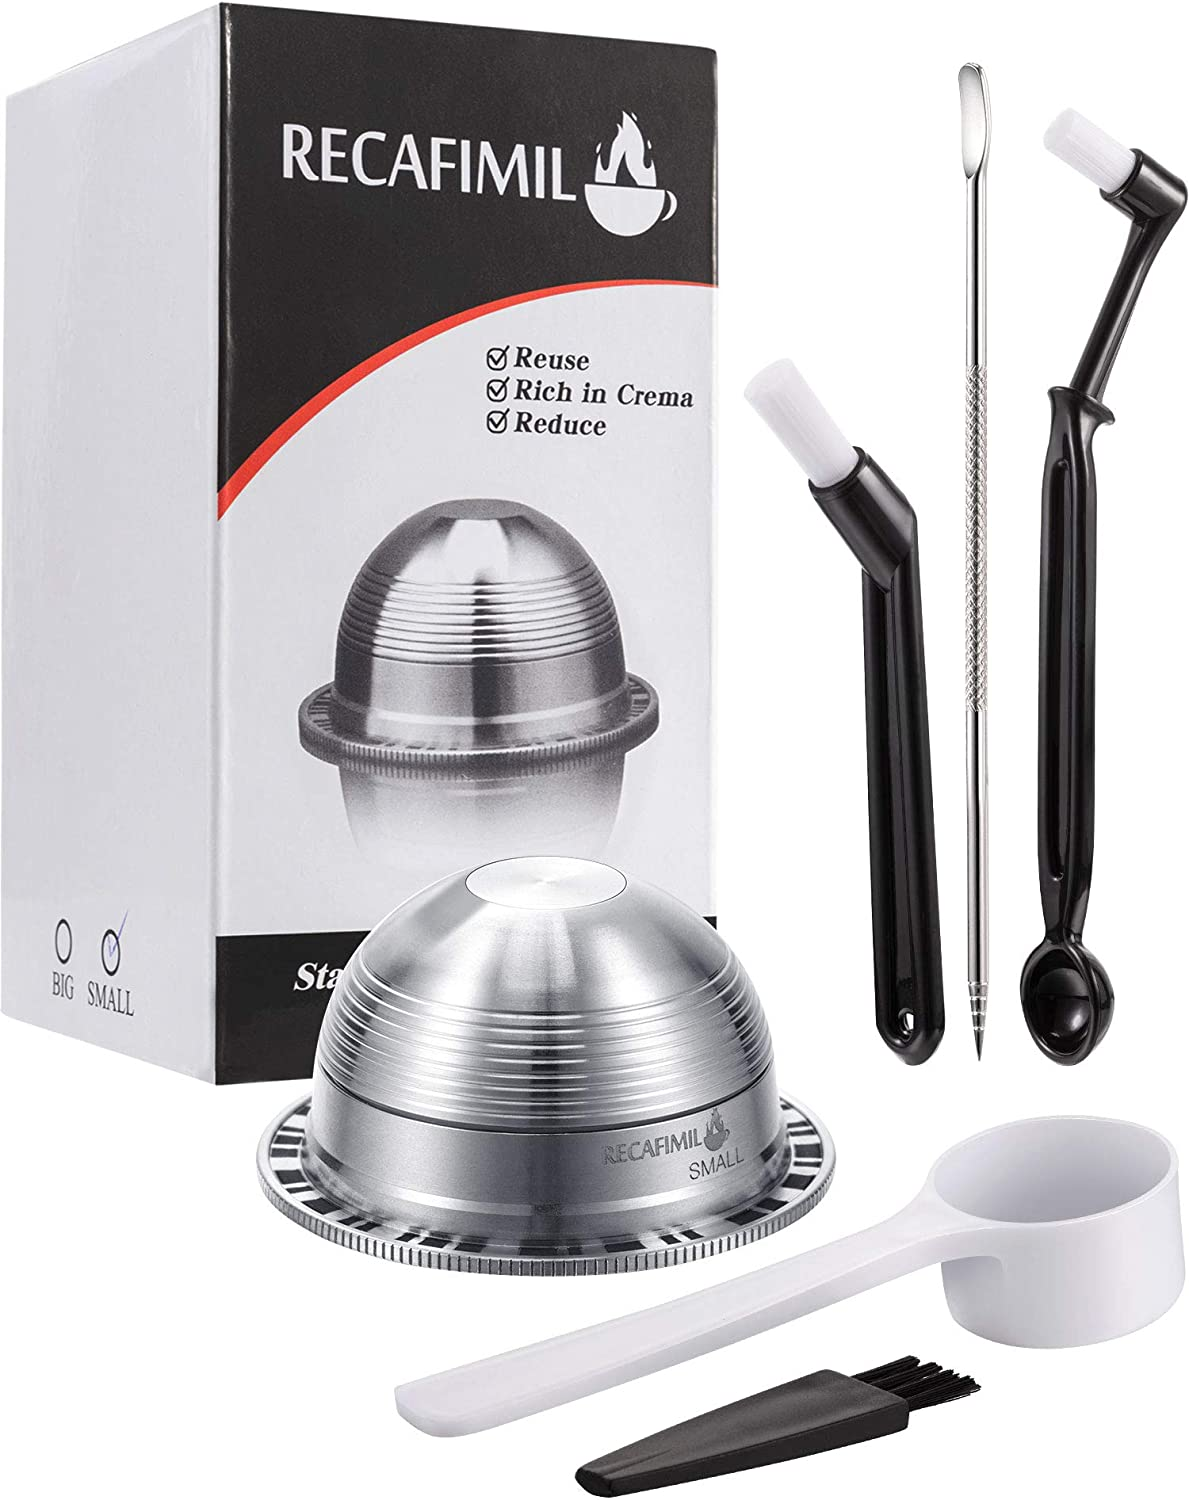 4 Pieces Stainless Steel Coffee Capsules Pods Set Compatible with NESPRESSO Vertuolline GCA1 and Delonghi ENV135, Include Cleaning Brushes, Coffee Pull Needle Refillable(Style 1)